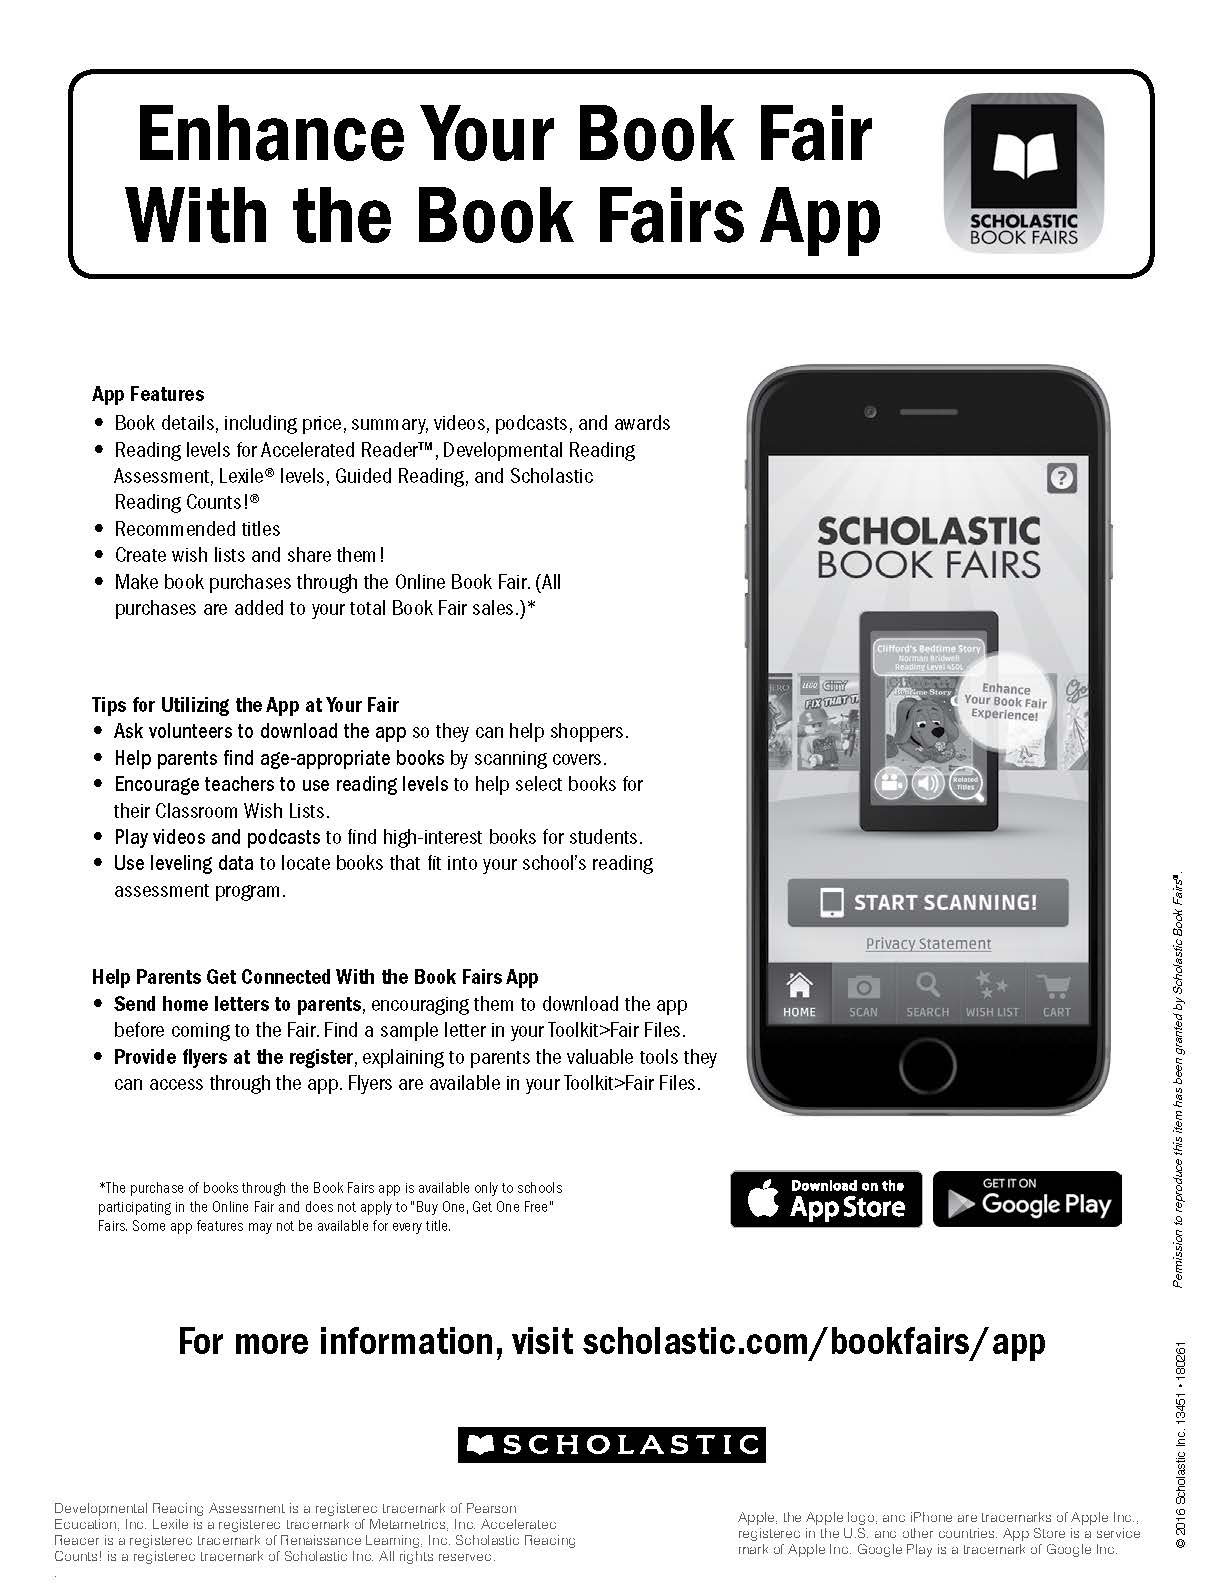 180261_book_fairs_app_information